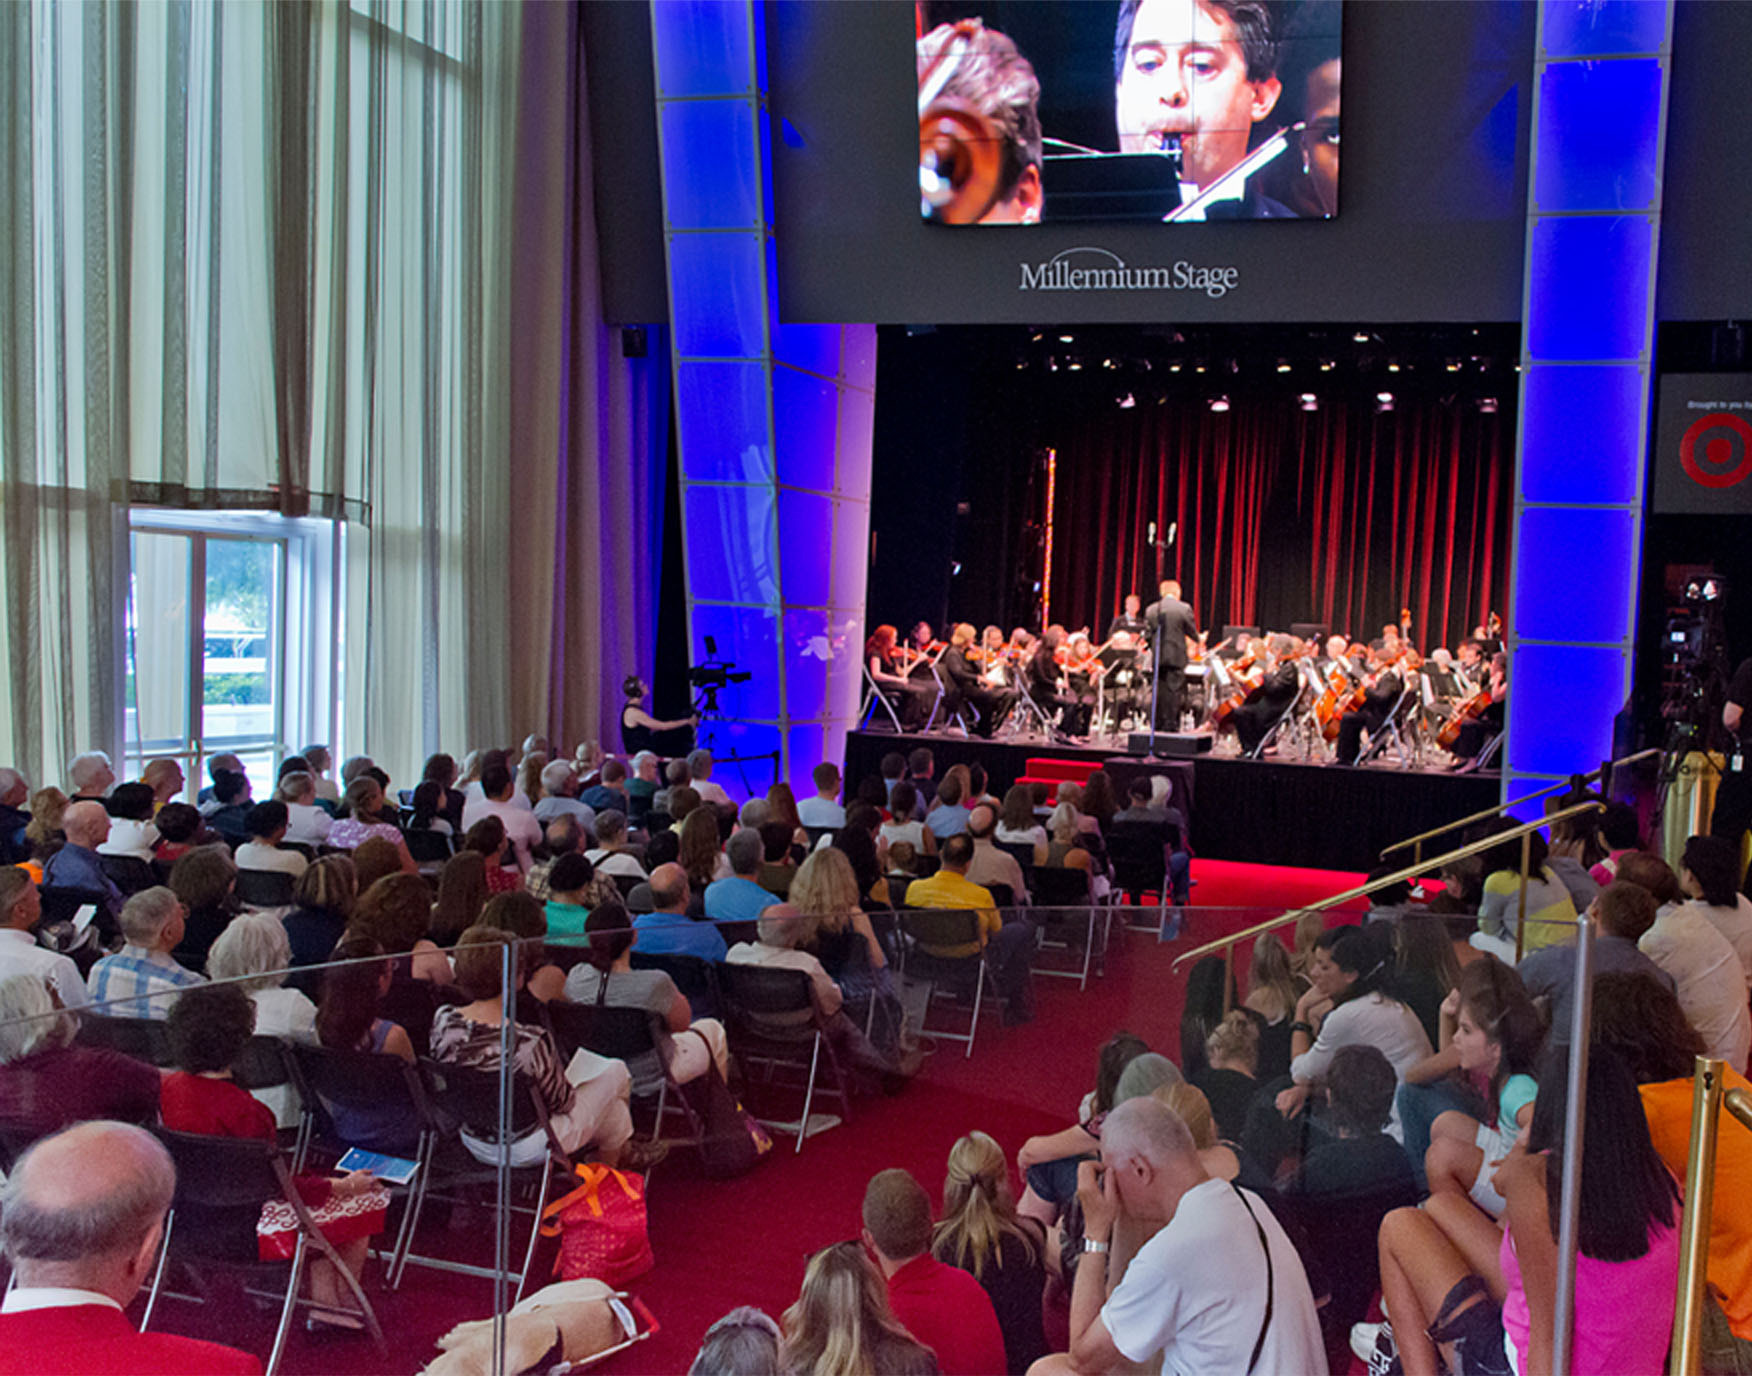 a360bf0dbd8b2f66e1da_Standing_room_only_performance_by_NJIO_at_the_Kennedy_Center.jpg